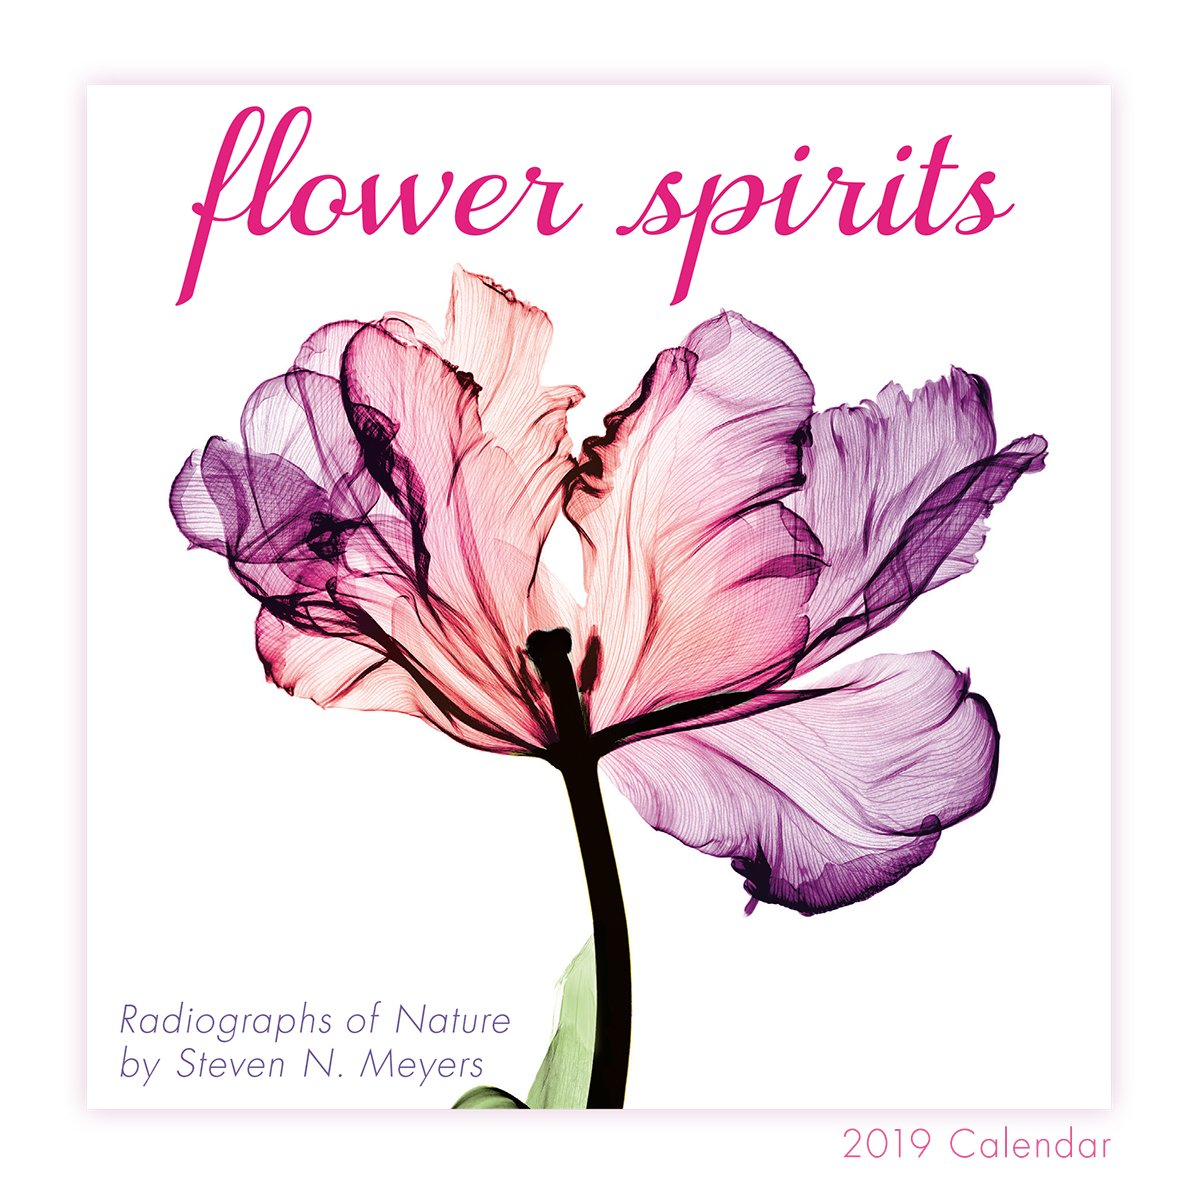 2019-flower-spirits-radiographs-of-nature-by-steven-n-meyers-mini-calendar-by-sellers-publishing-7-x-7-cs-0465